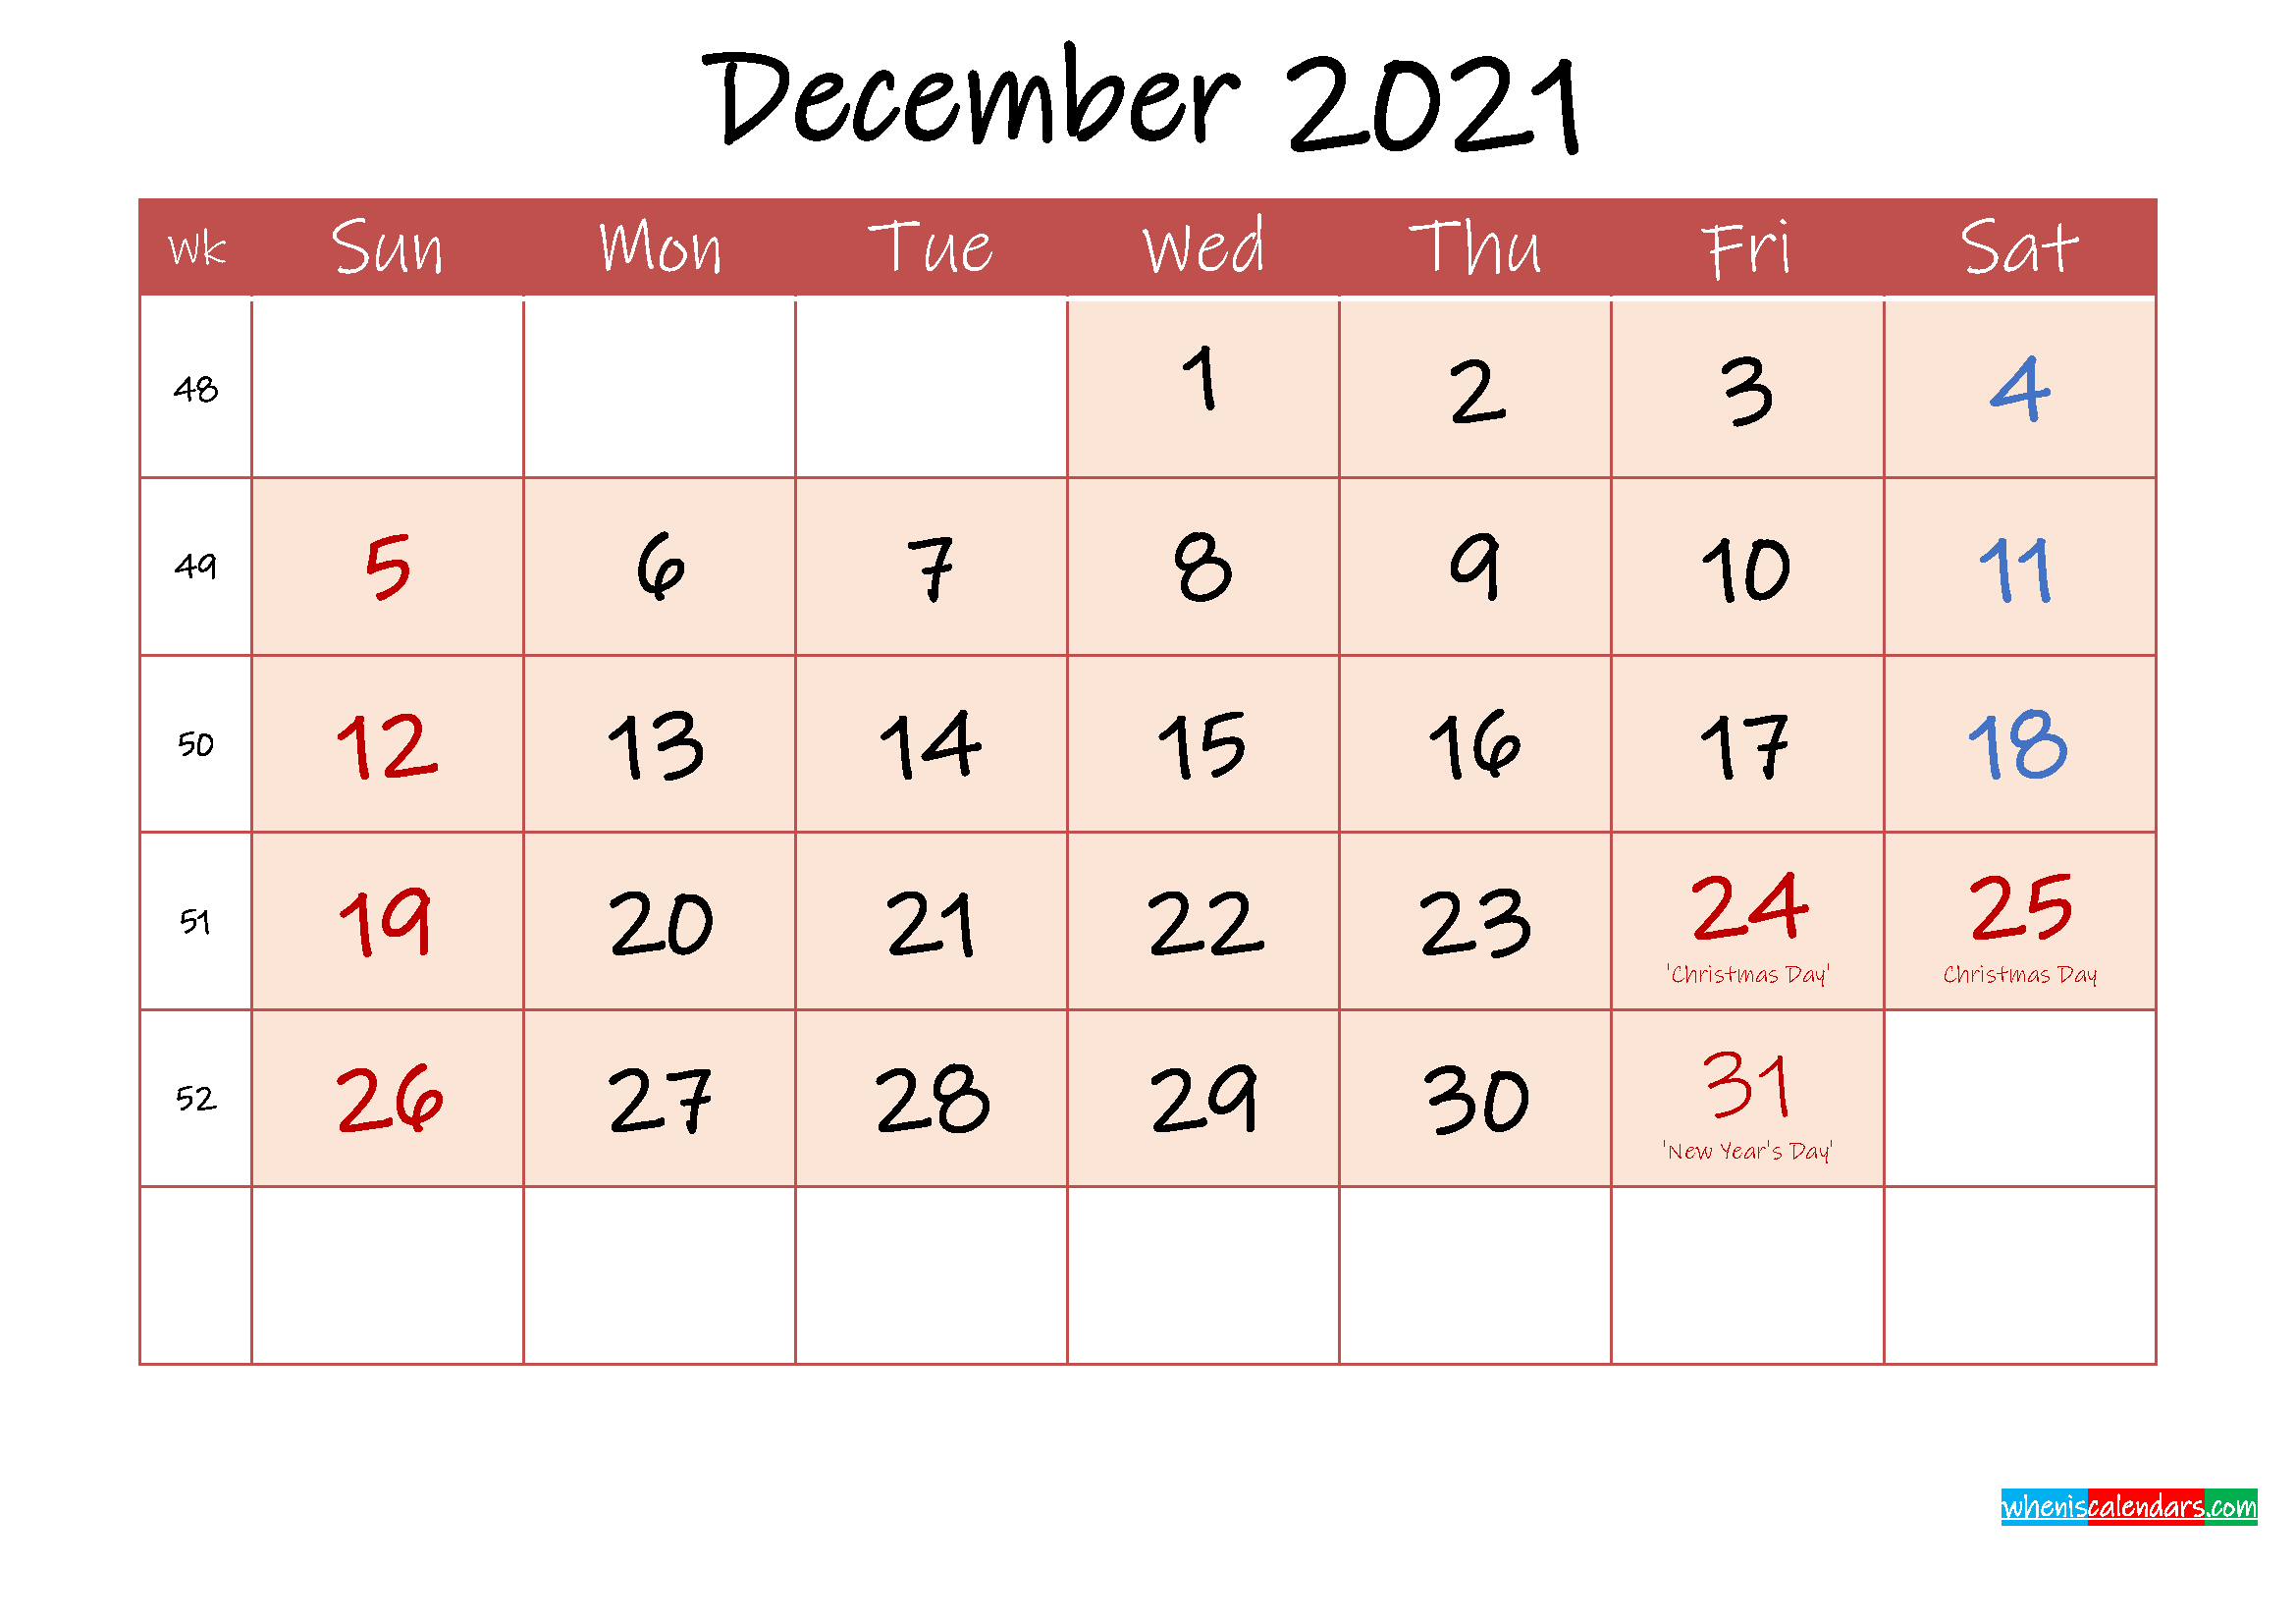 December 2021 Free Printable Calendar with Holidays